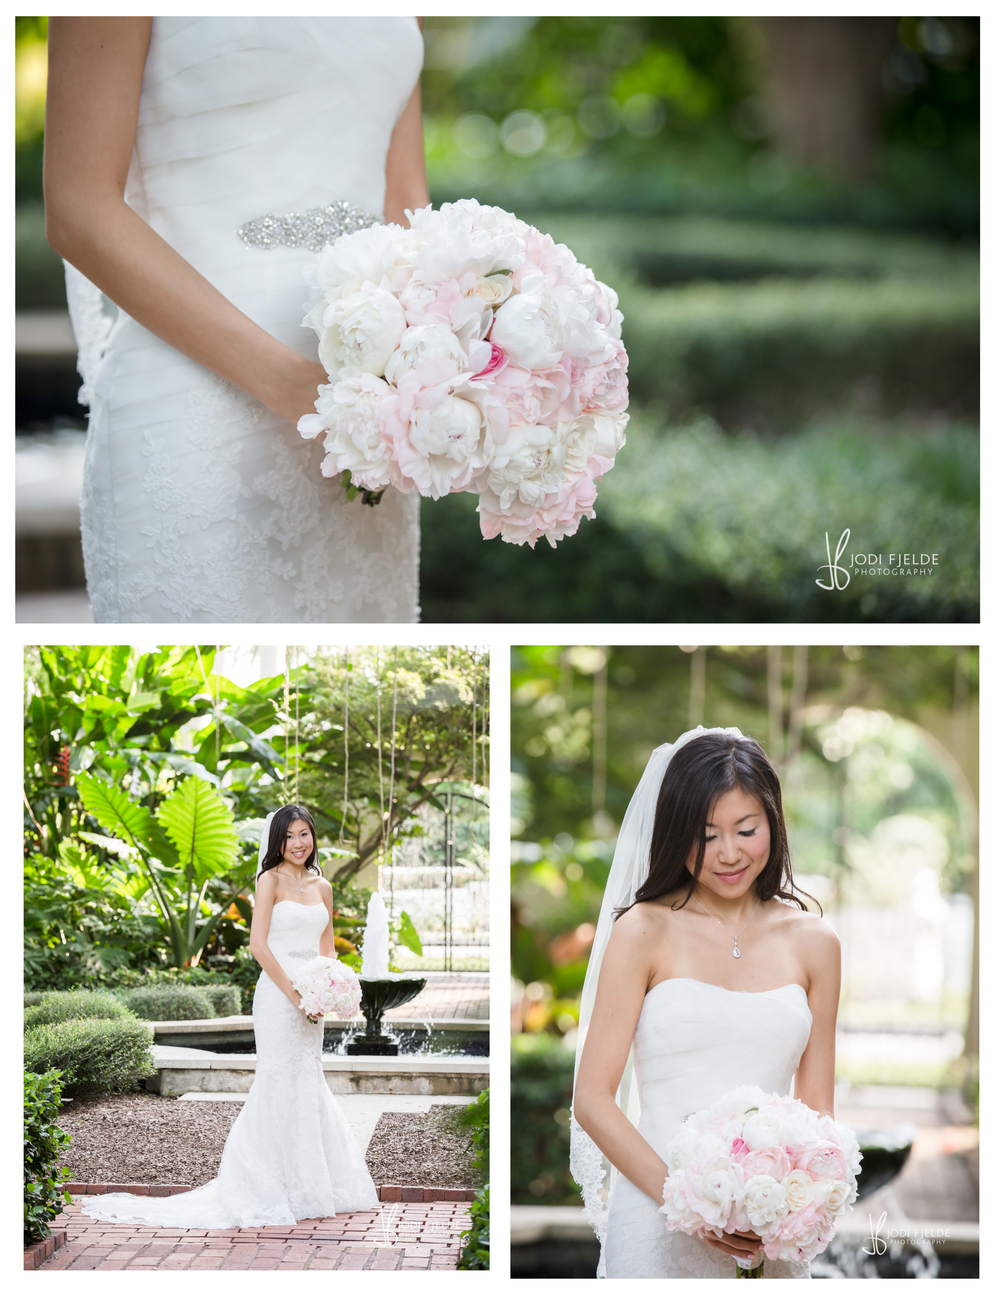 Lake_Pavilion_Wedding_West_Palm_Beach_Jodi_Fjelde_Photography_Betty_Alex_Sociaety_Of_Four _Arts_1.jpg